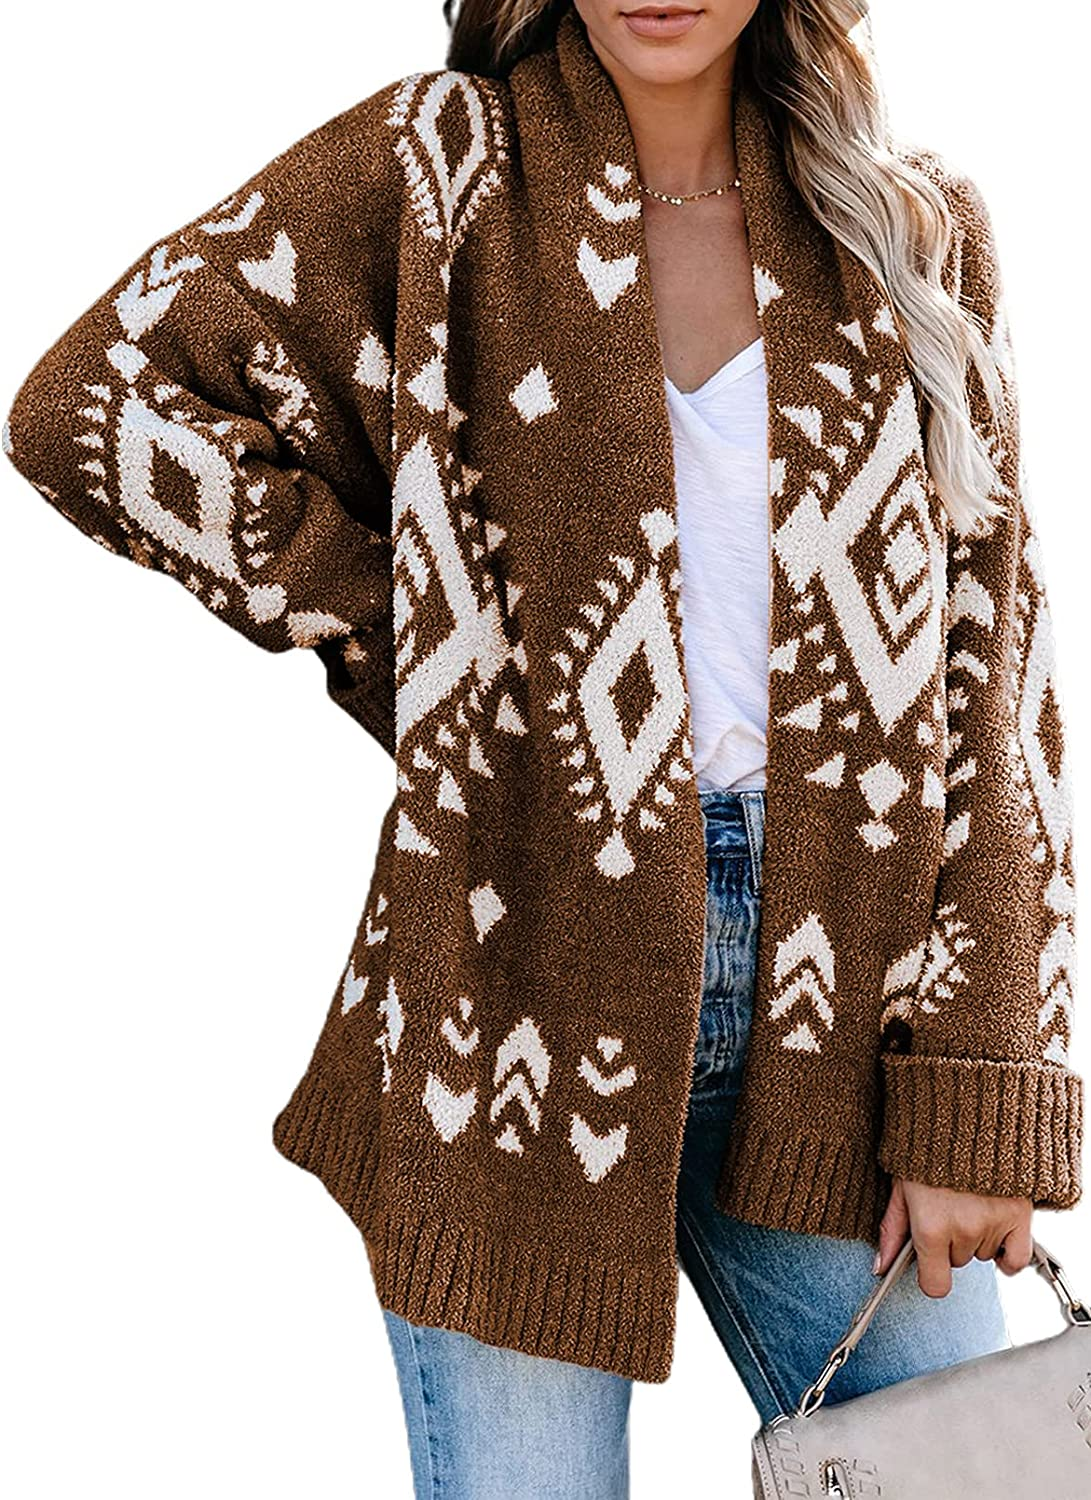 Dokotoo Cardigan Sweaters for Women Long Sleeve Geometric Aztec Print Open Front Boyfriend Comfy Knitted Cardigans Coats